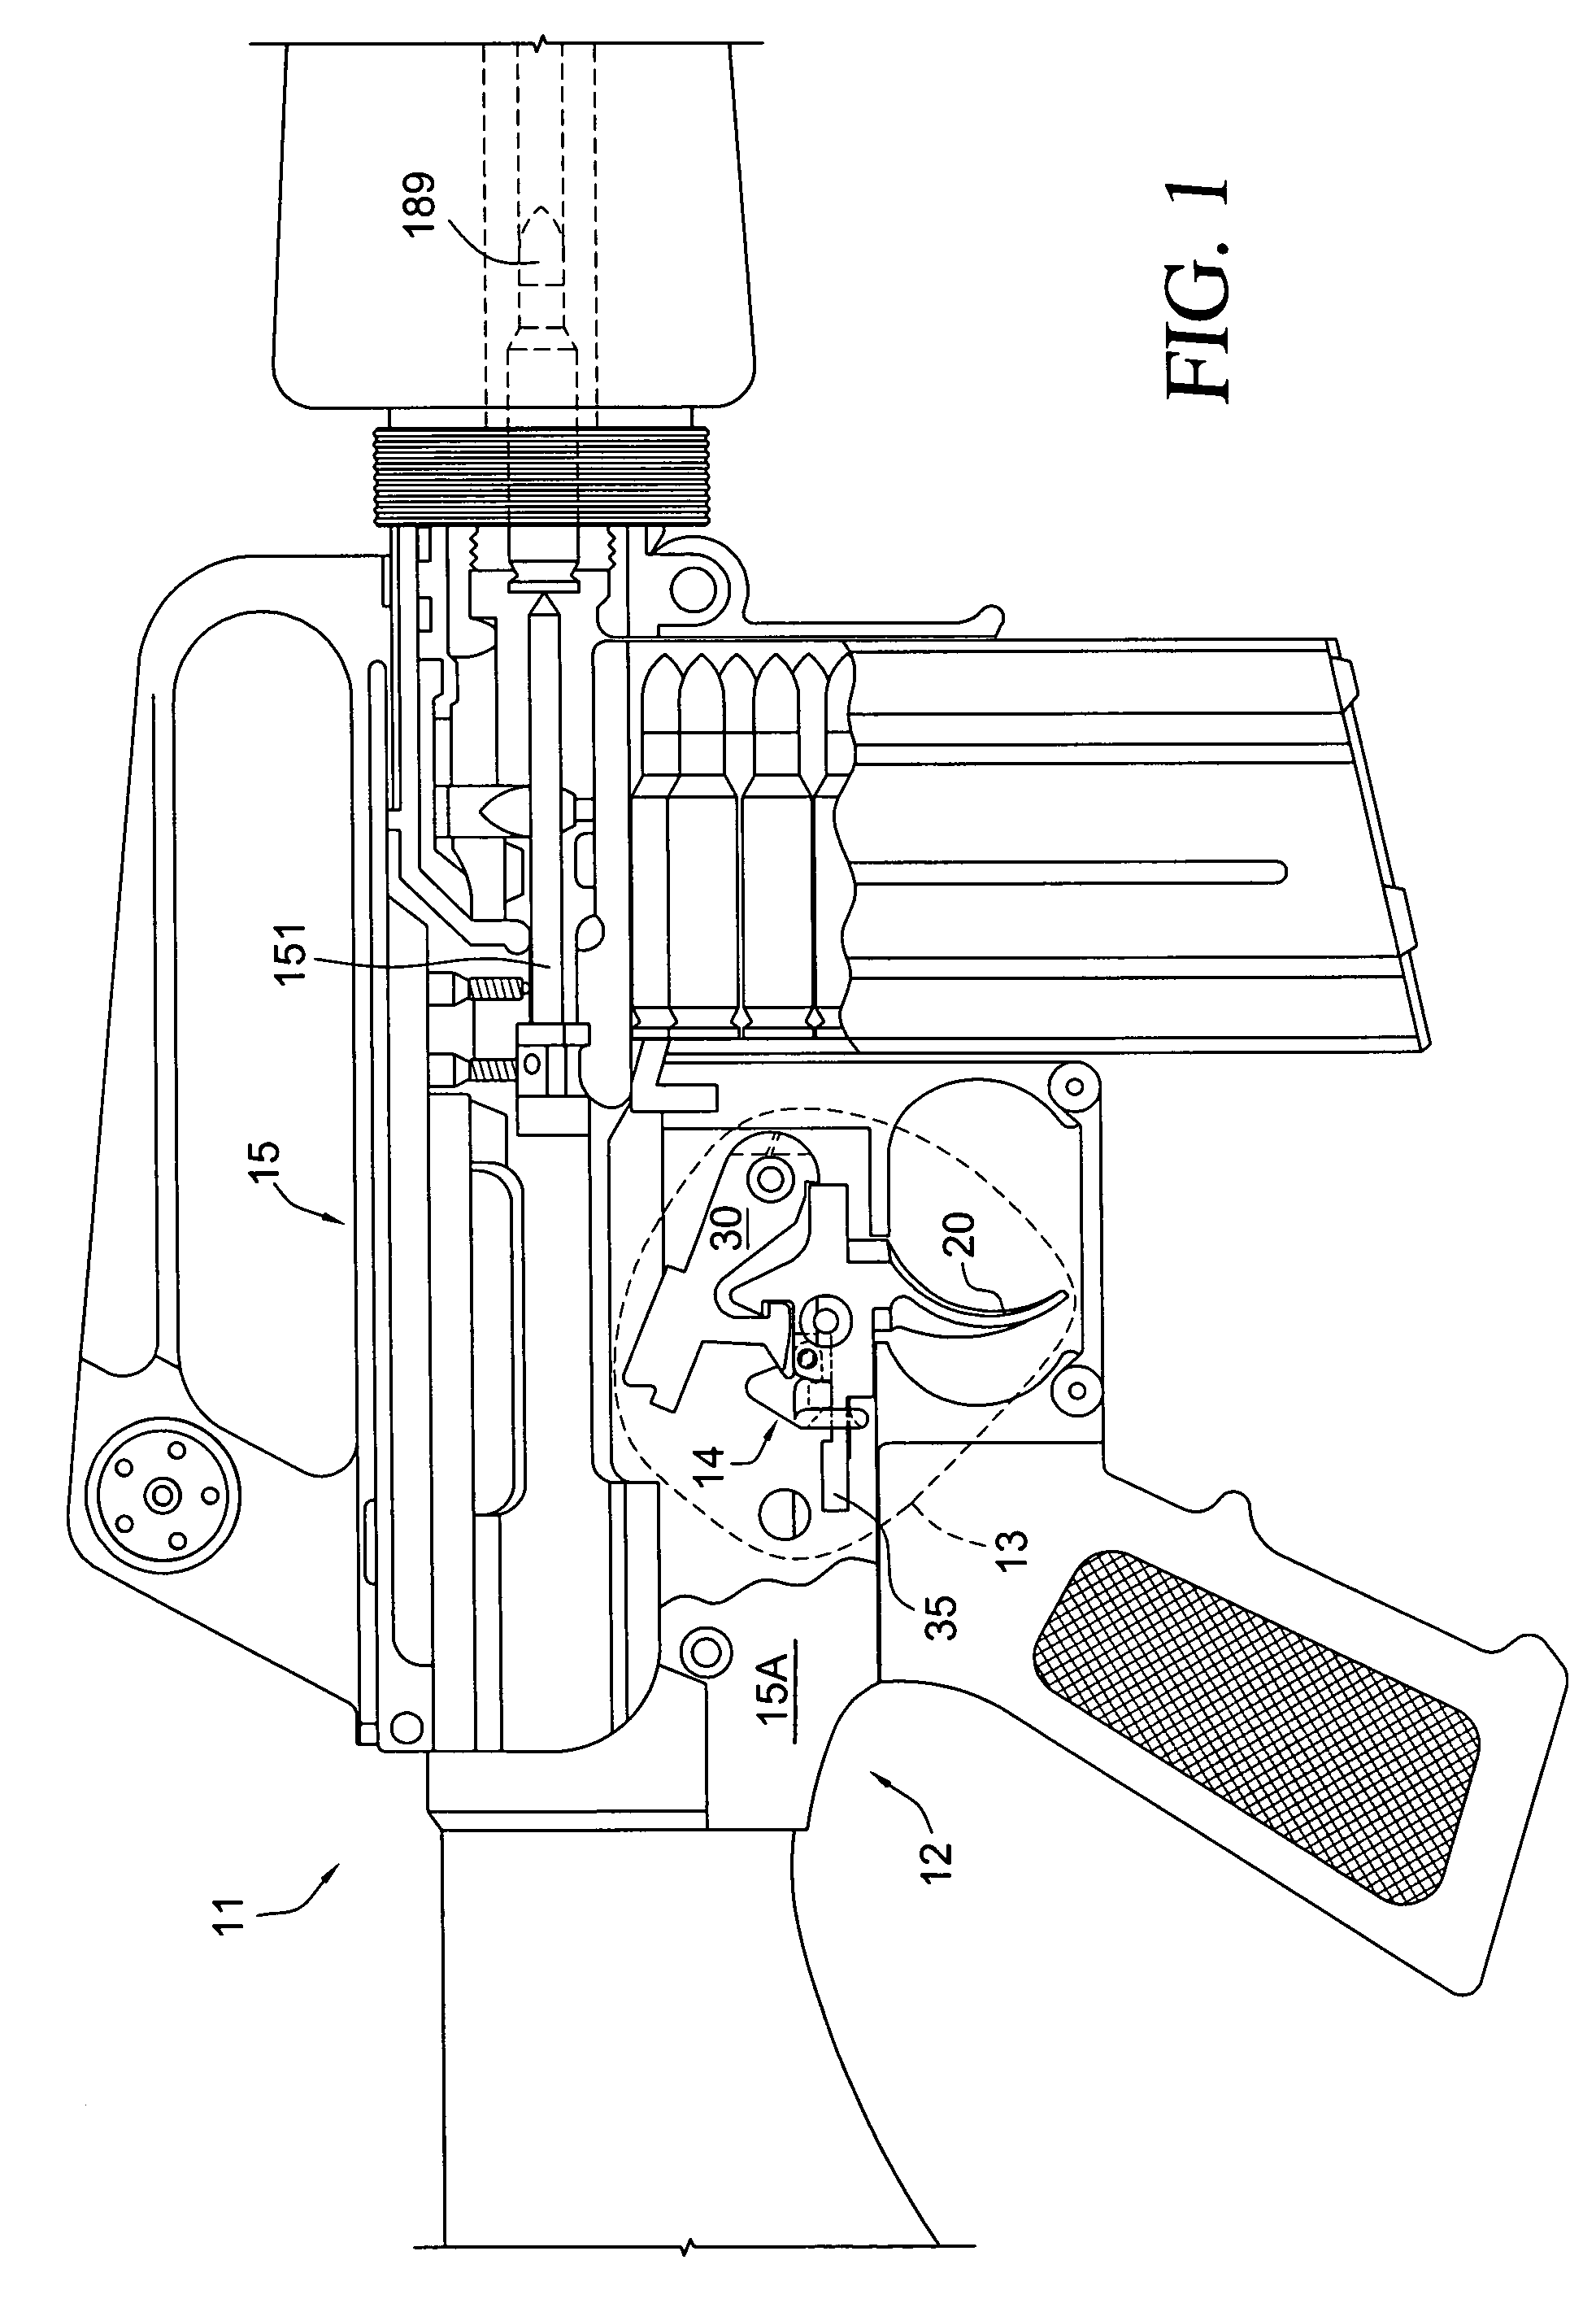 M16 Grip Diagram Engine Diagram And Wiring Diagram